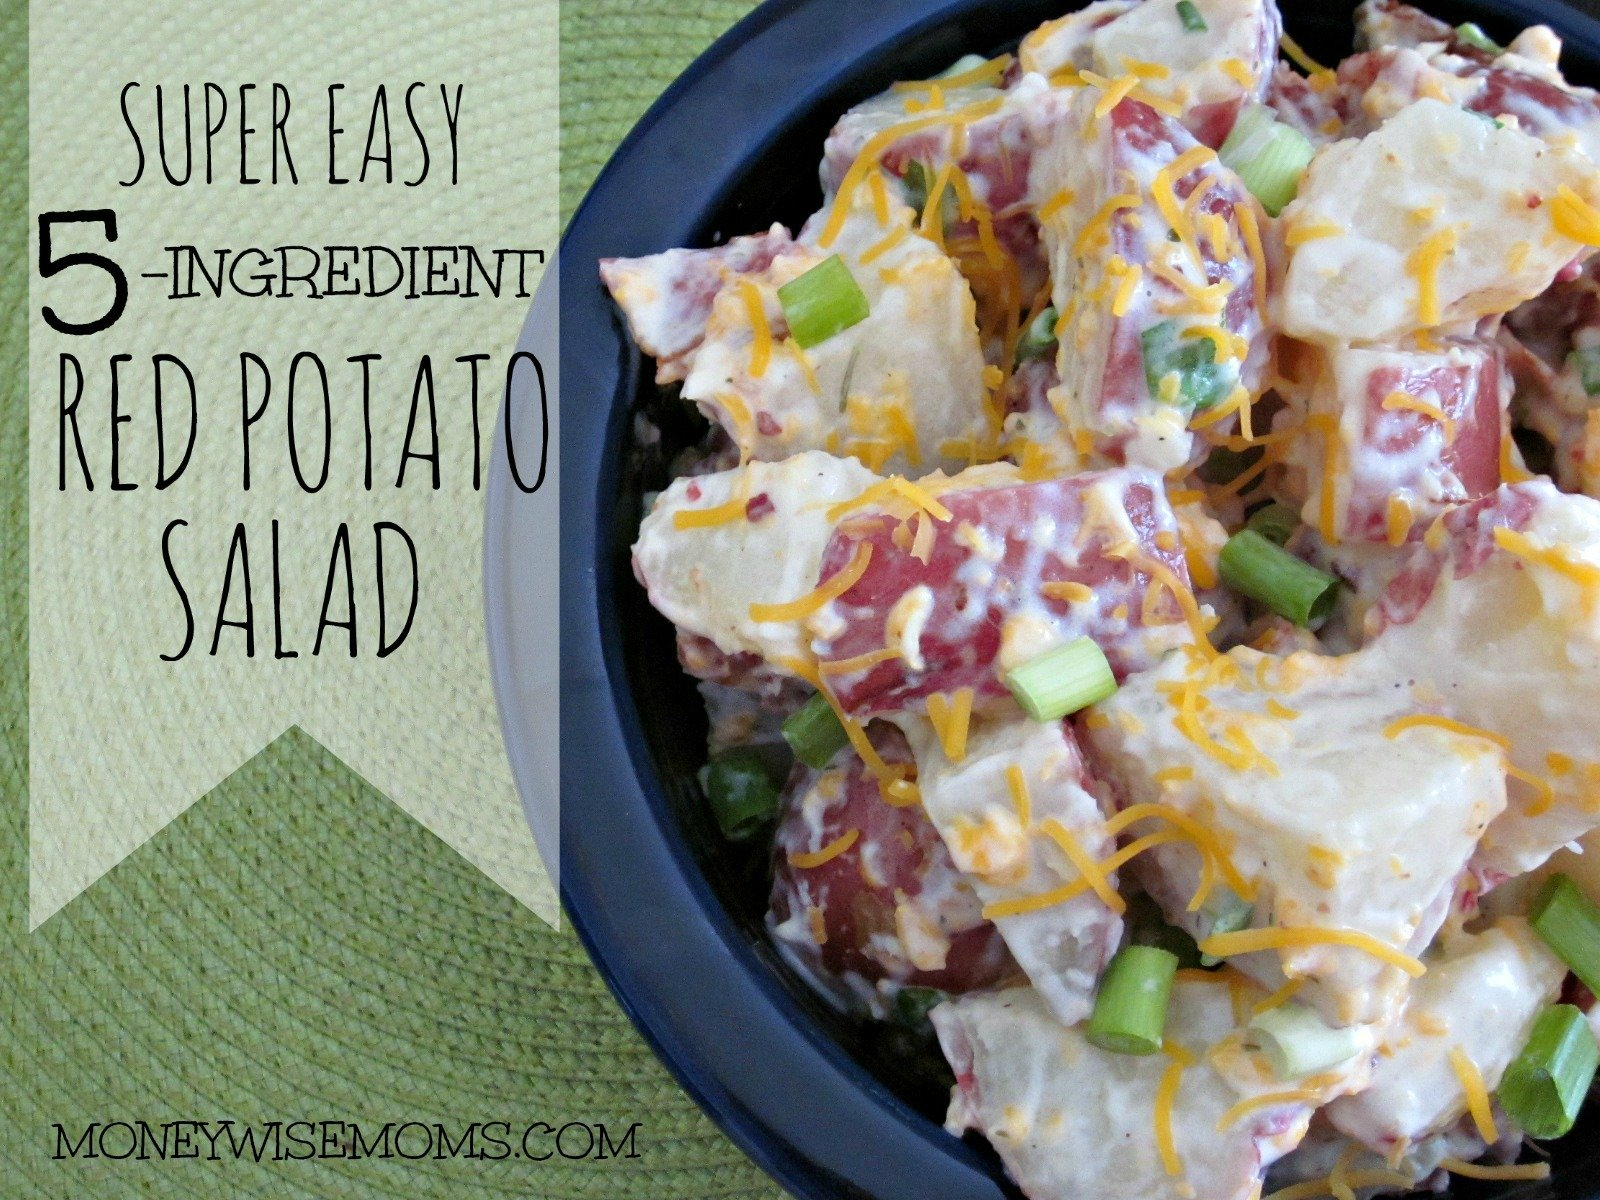 Super Easy 5 Ingredient Red Potato Salad Moneywise Moms